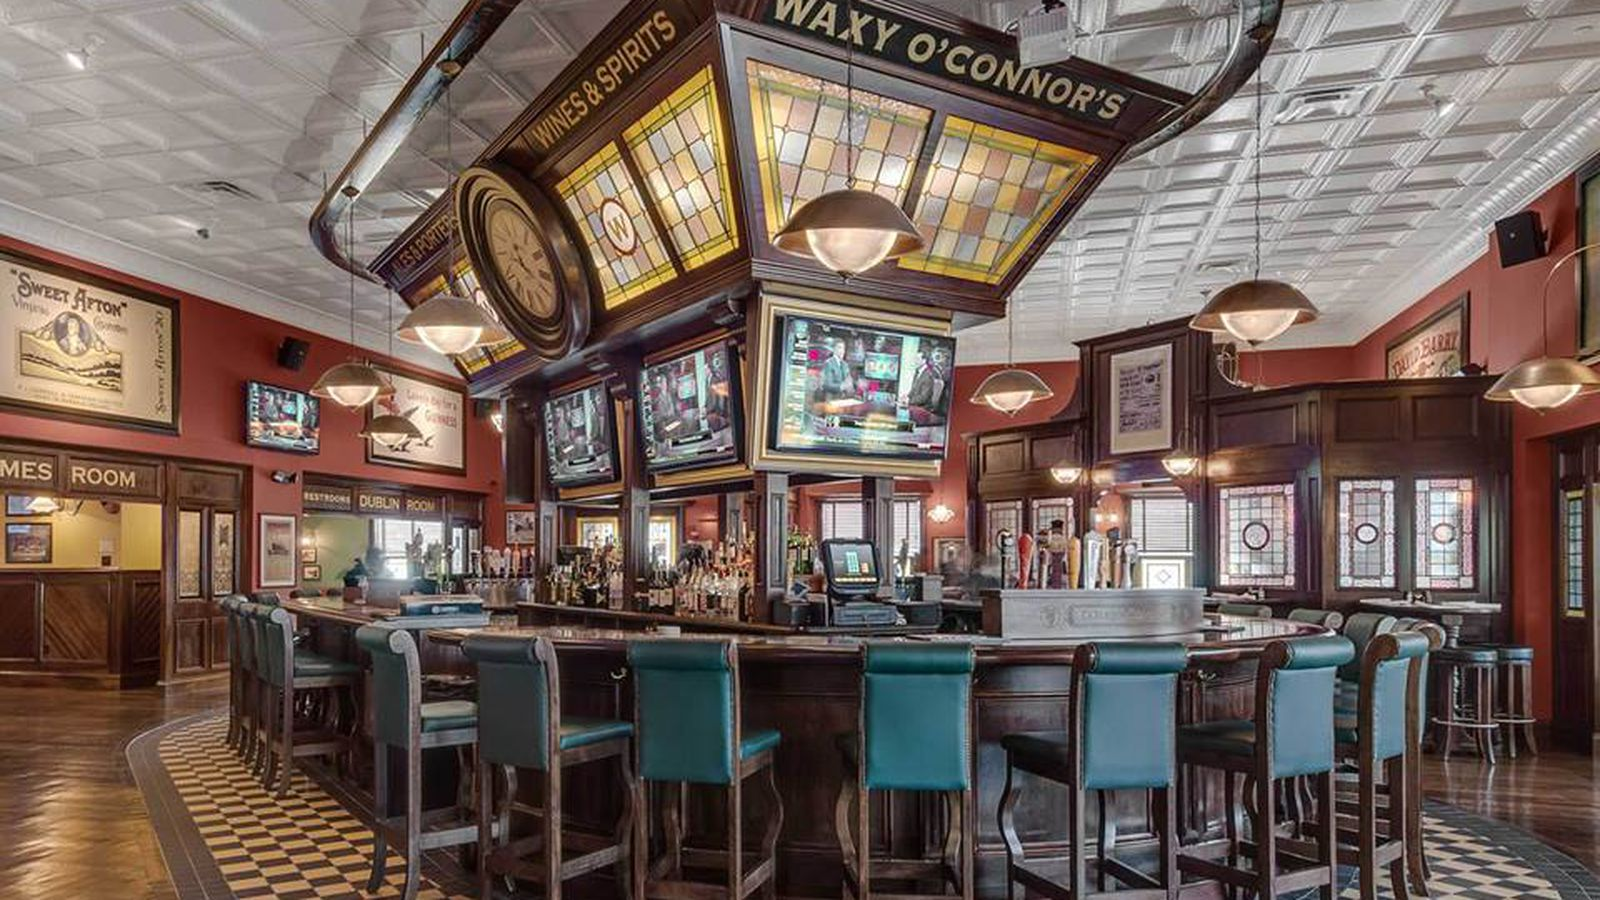 Craigslist Twin Cities >> Waxy O'Connor's Could Open in Time for Marathon Monday - Eater Boston